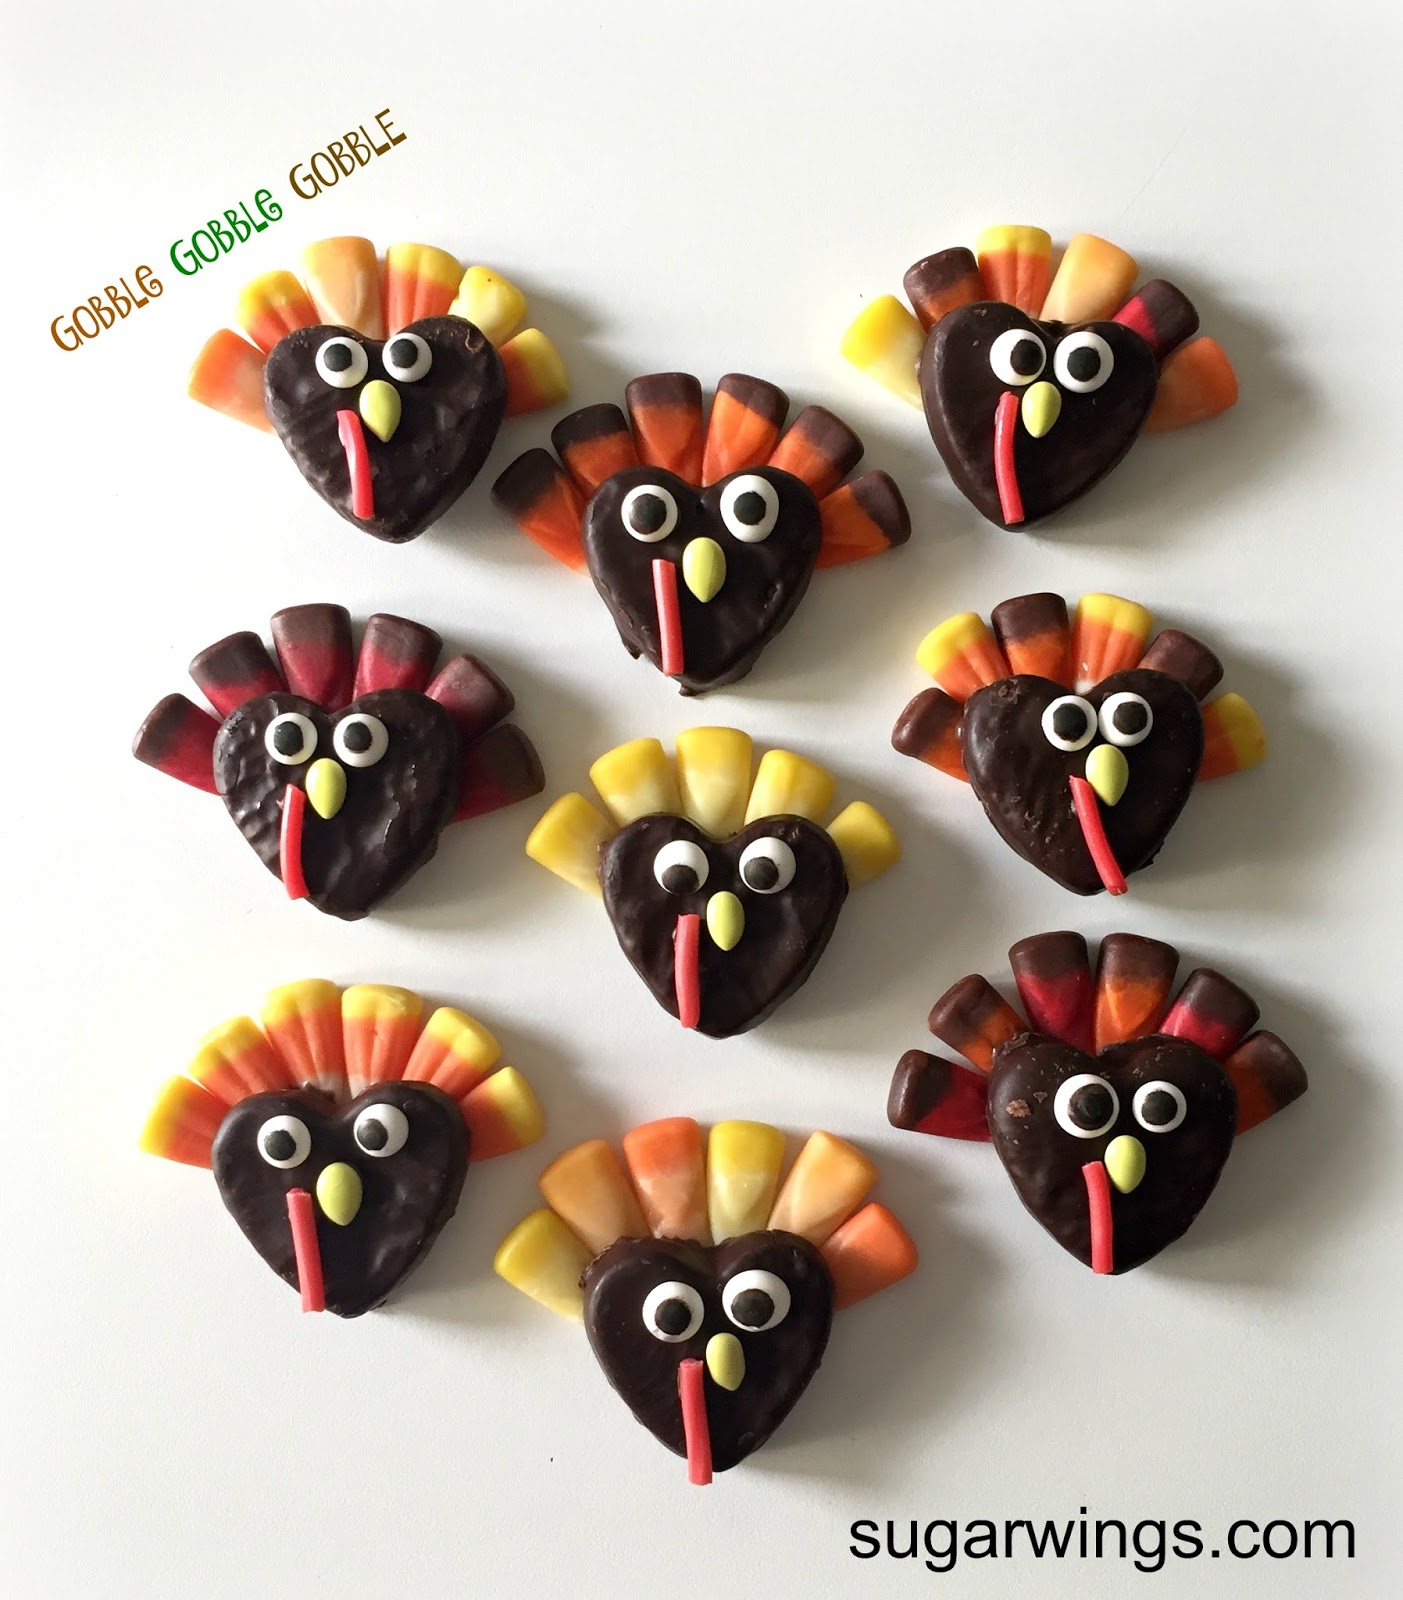 19 Edible Turkey Crafts Thanksgiving Crafts: Sugar Swings! Serve Some: Super Easy Candy Turkeys For